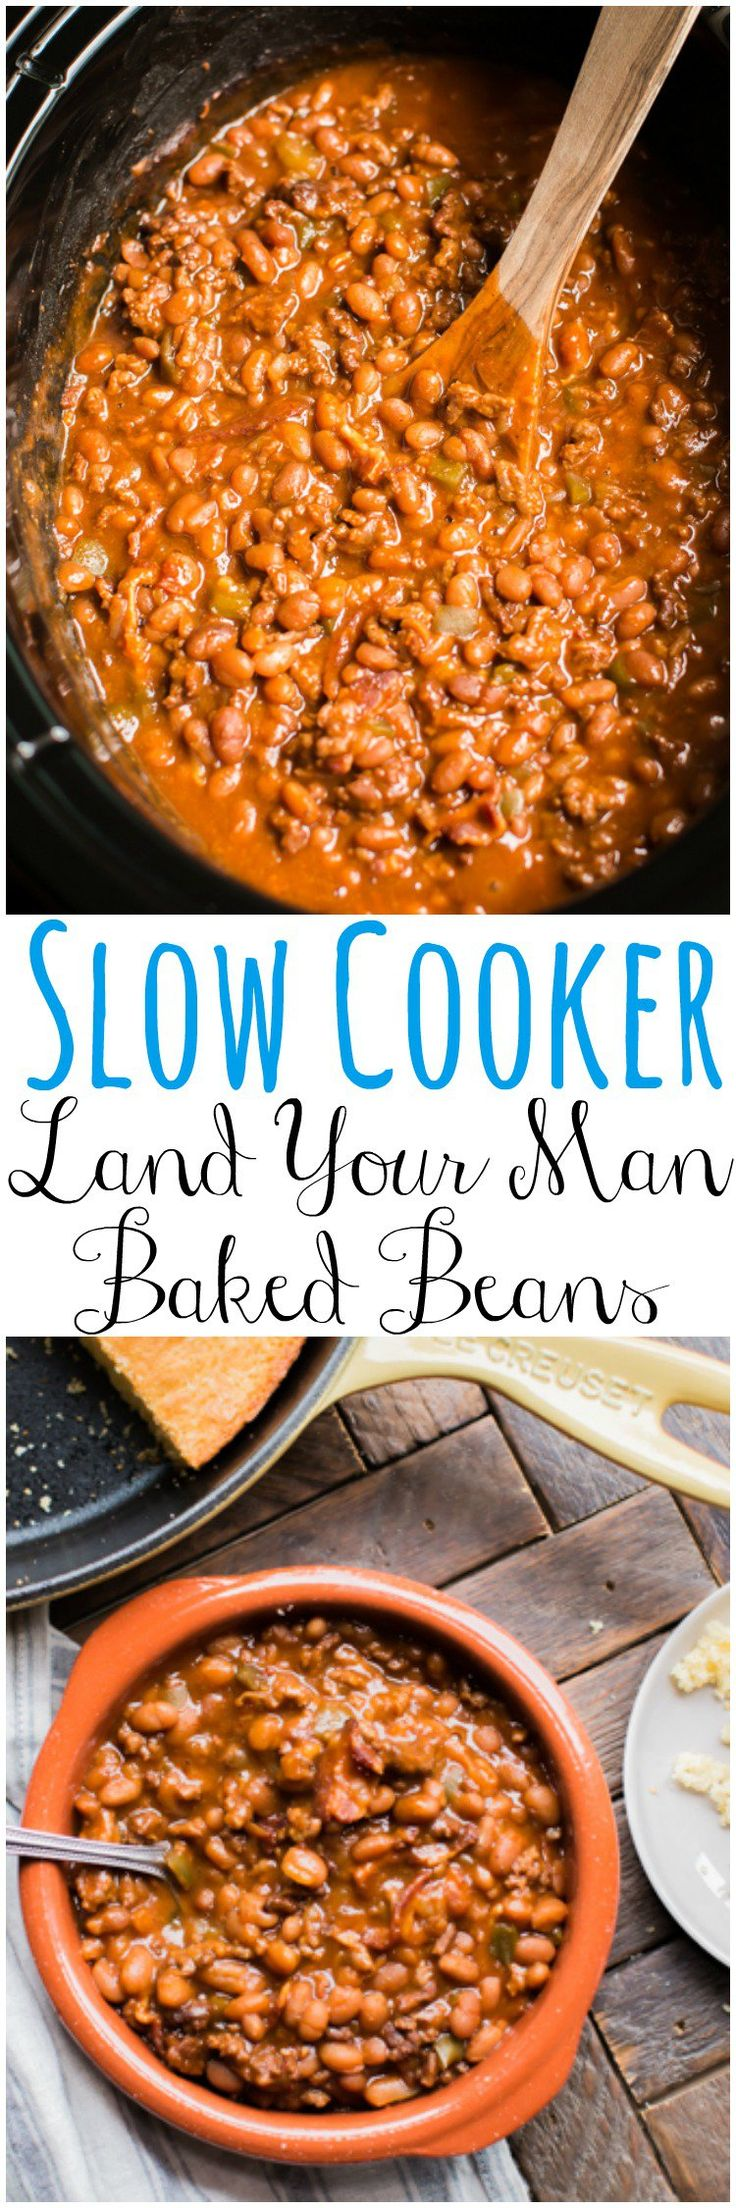 Slow Cooker Land Your Man Baked Beans. This vintage recipe is delish even if you don't need to land a man.